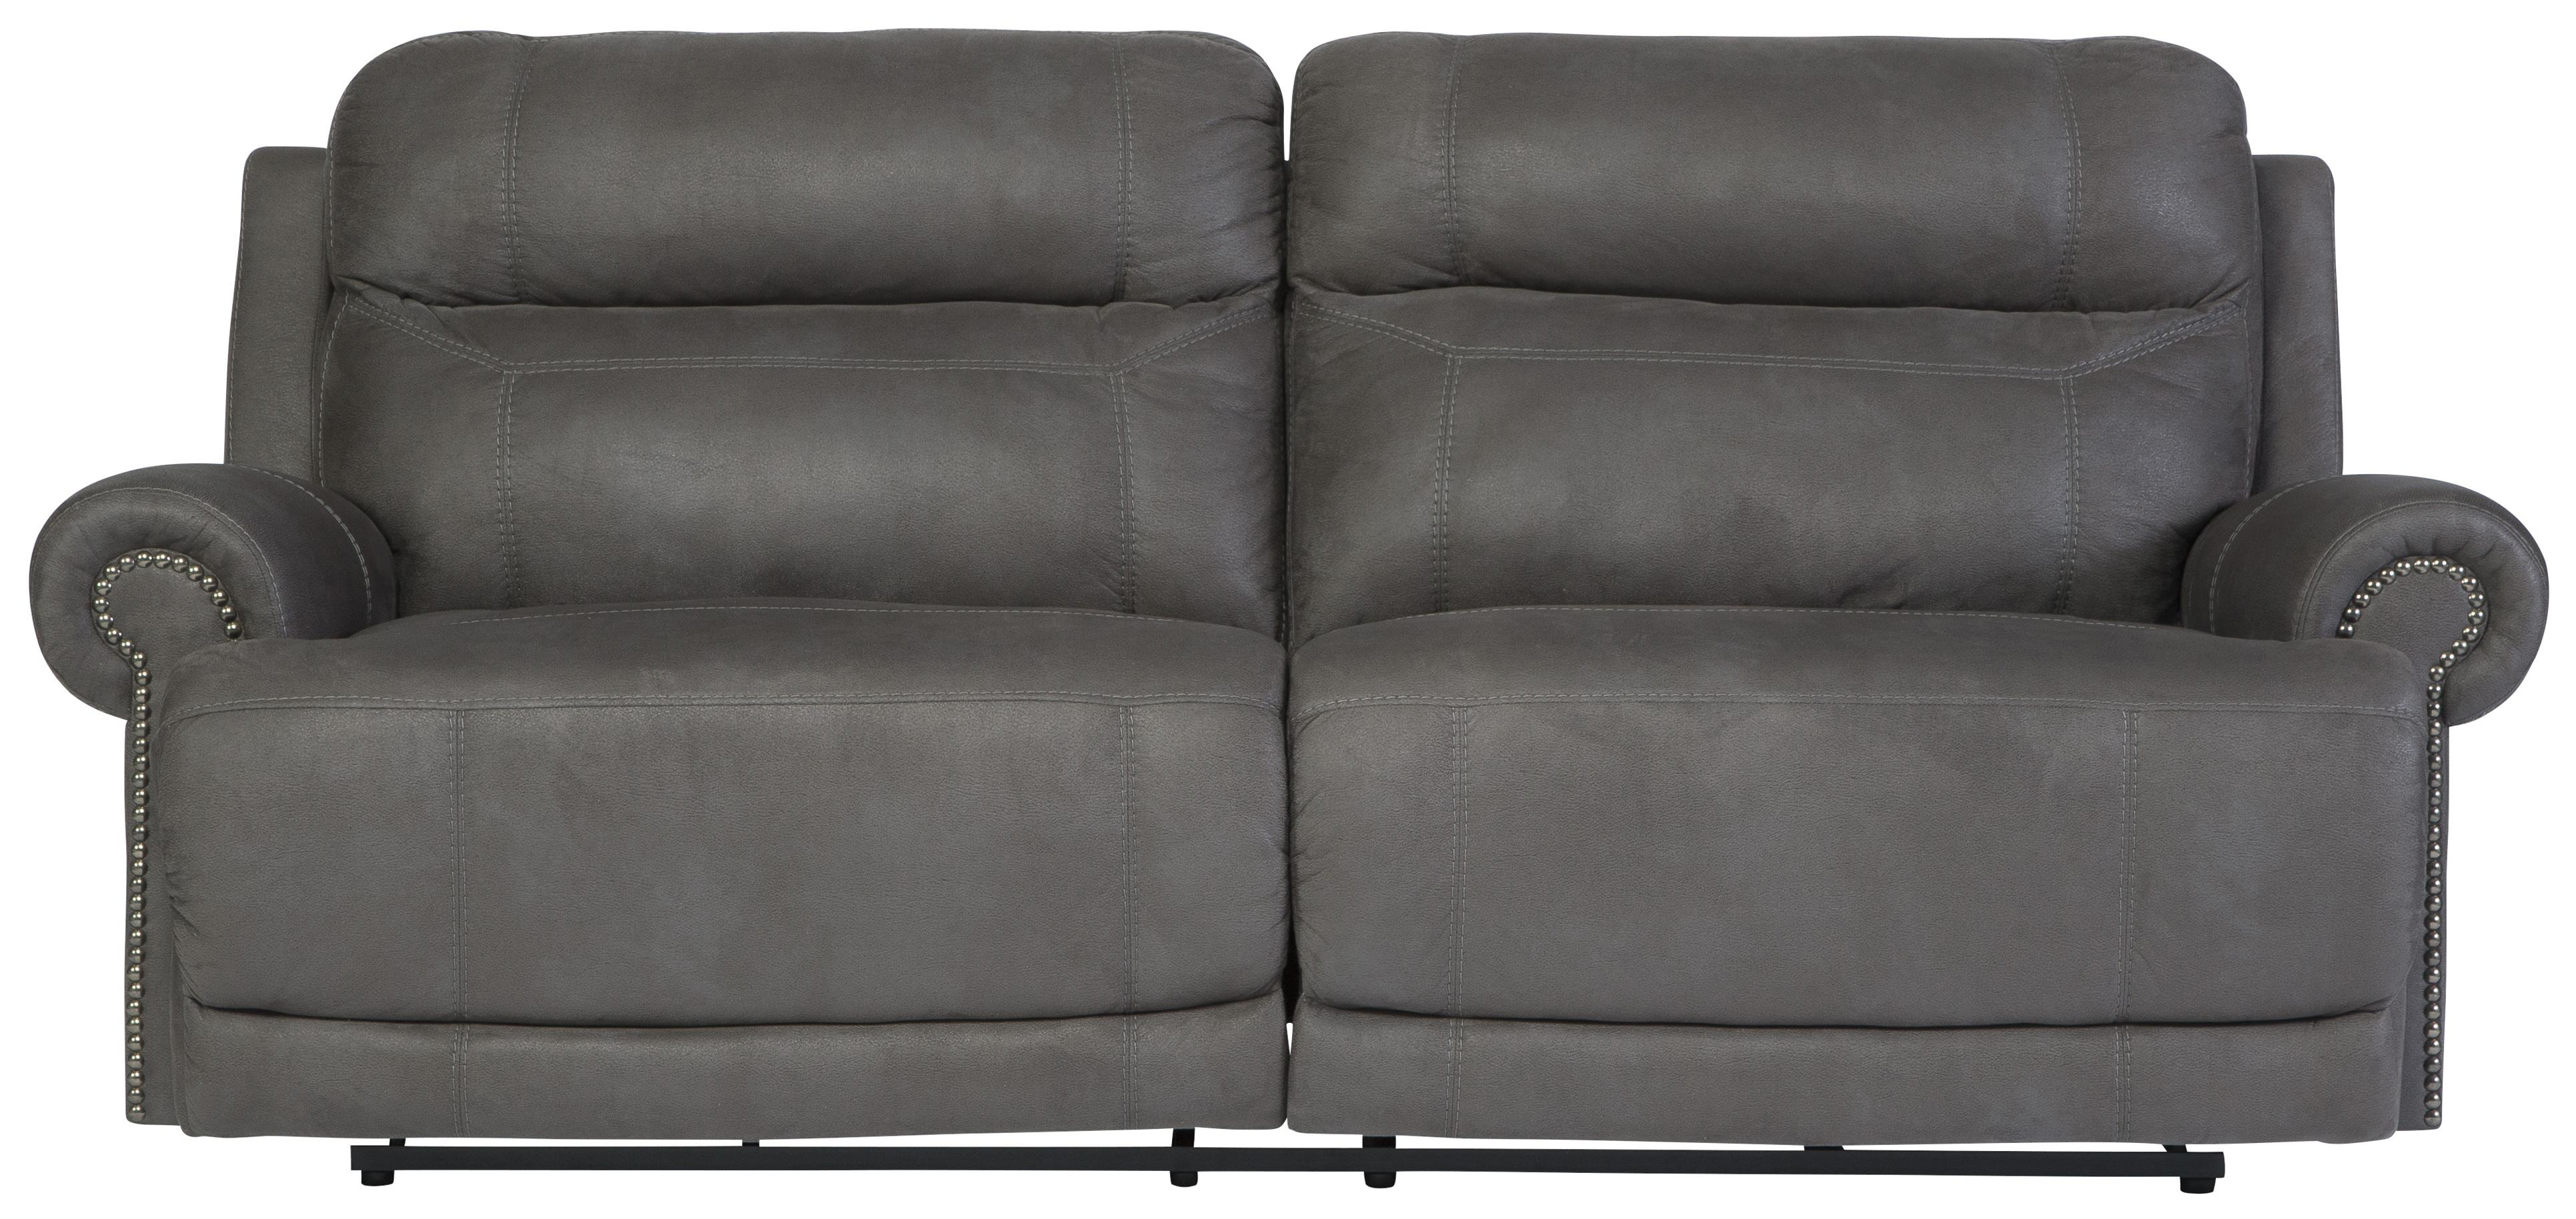 Swell 2 Seat Faux Leather Reclining Power Sofa With Rolled Arms Theyellowbook Wood Chair Design Ideas Theyellowbookinfo